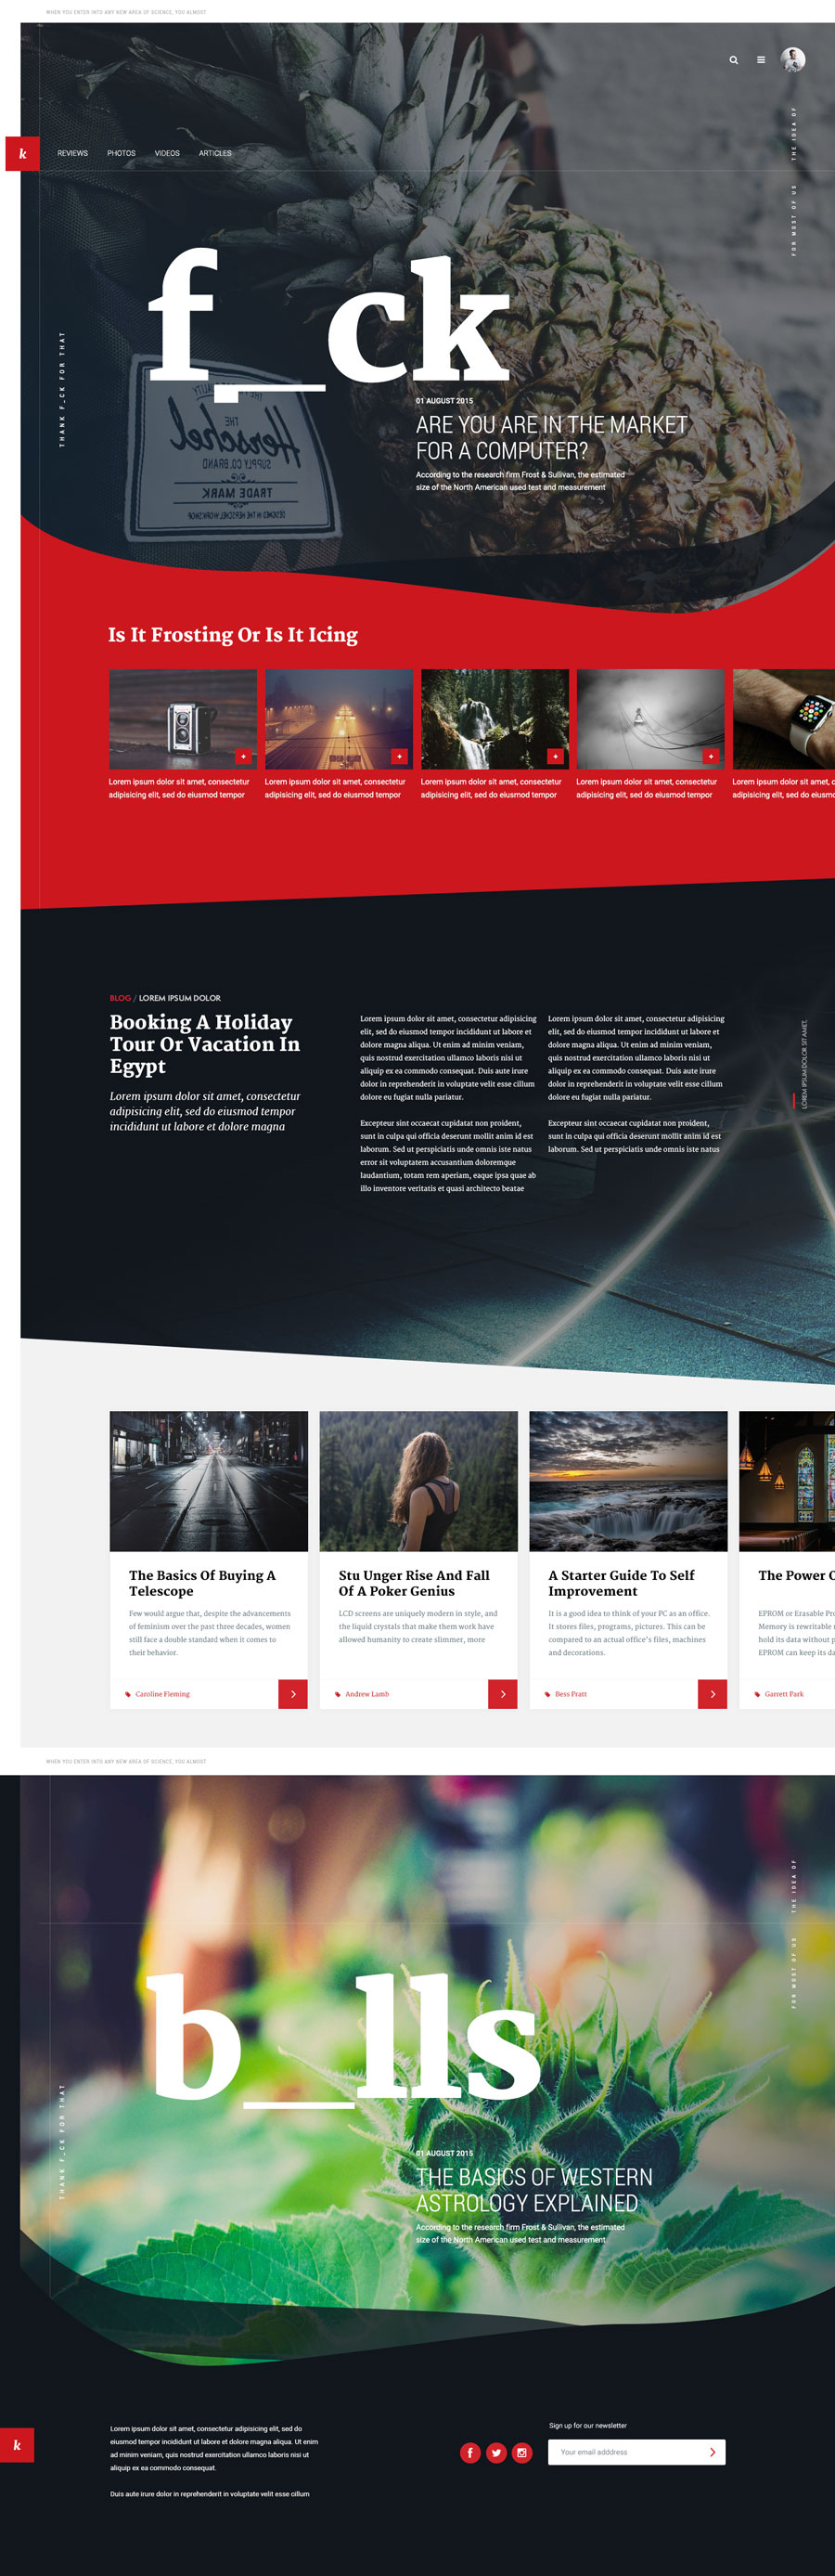 Unique layout for a magazine style website PSD template